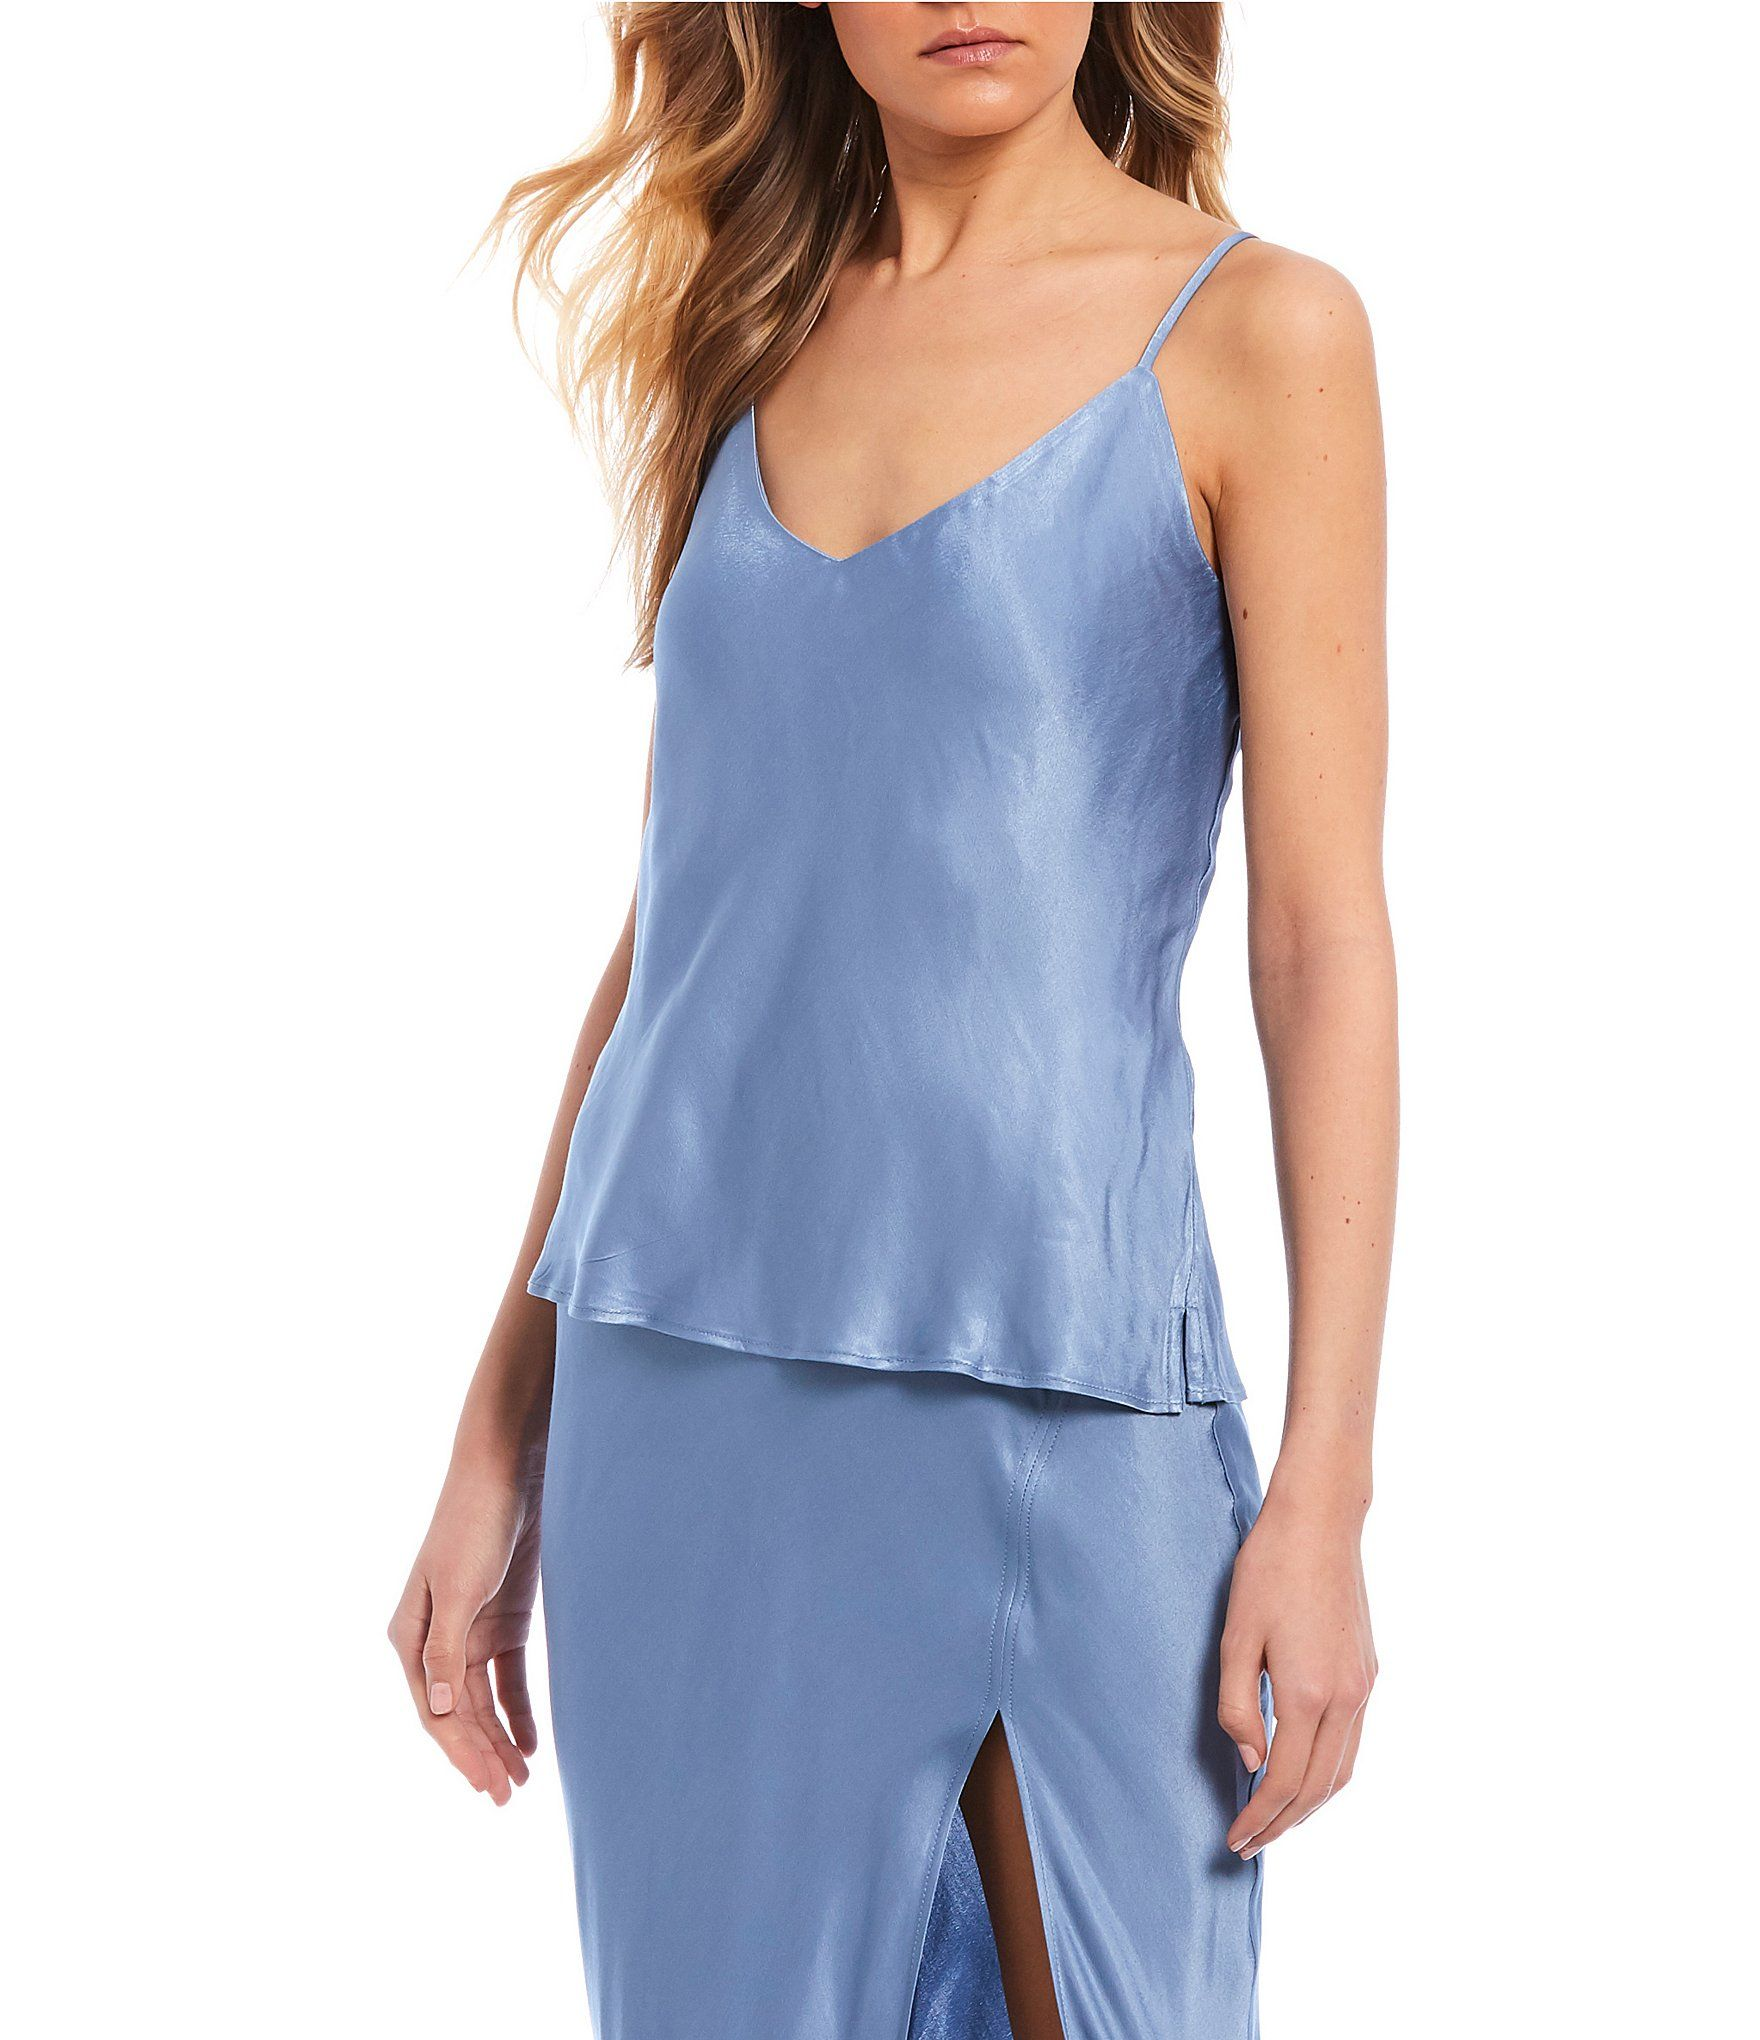 From GB, this camisole features:Satin fabricationV-necklineadjustable spaghetti strapsStraight hem Linedviscose/Rayon/PolyesterMachine wash; line dryImported.